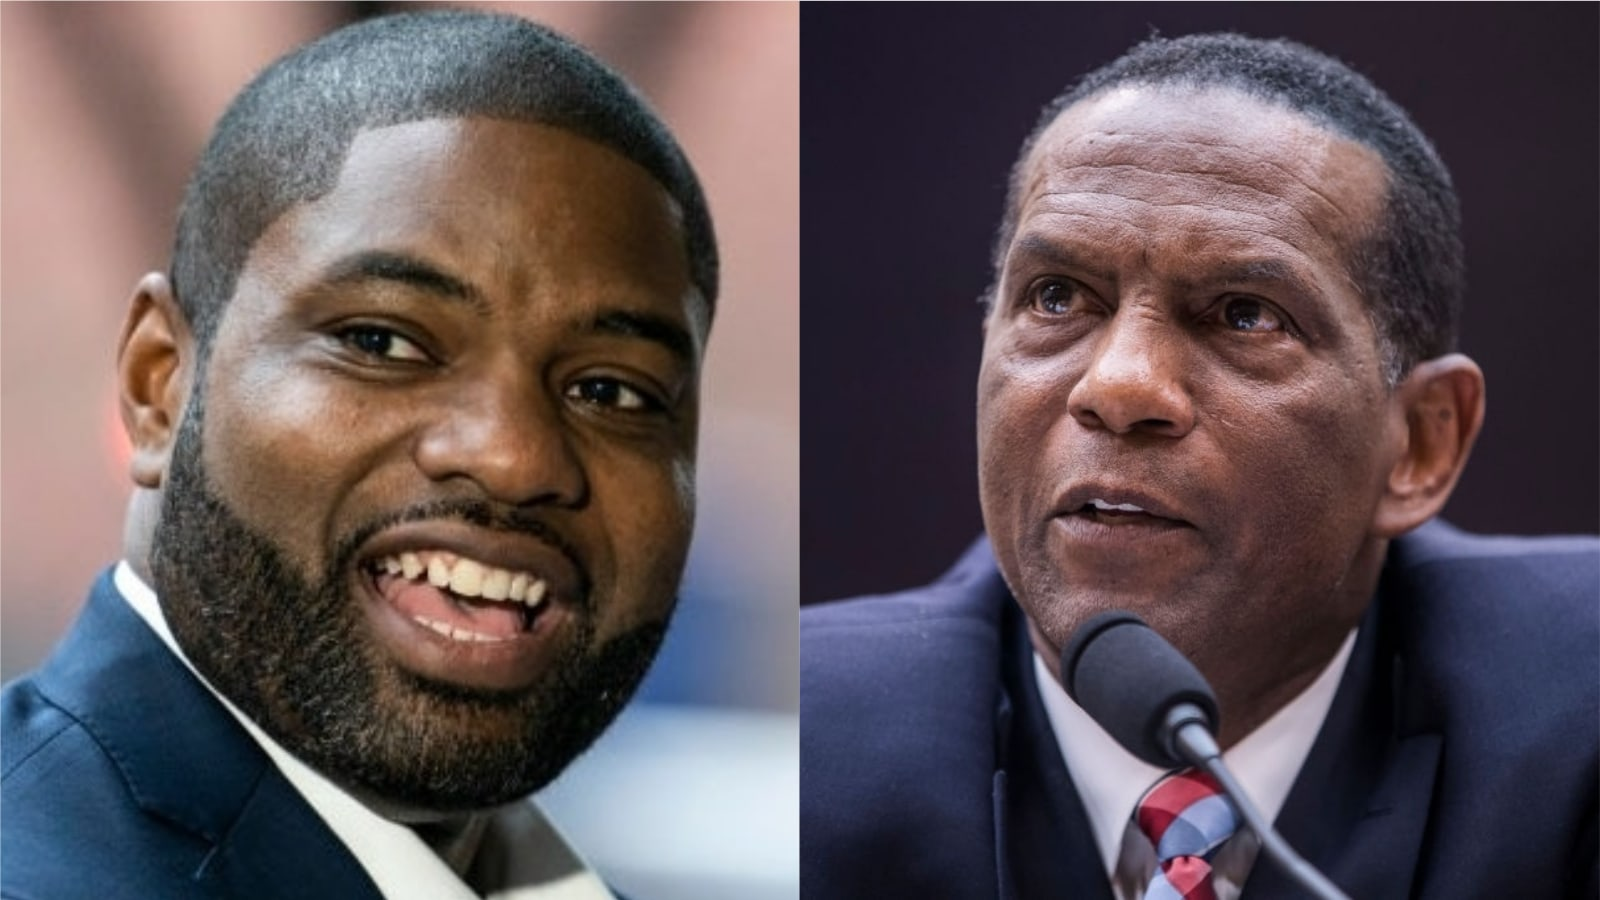 Black Congressmen Who Objected To Certification Of Electoral Votes Sit Among Group Of Republicans Facing Calls To Resign